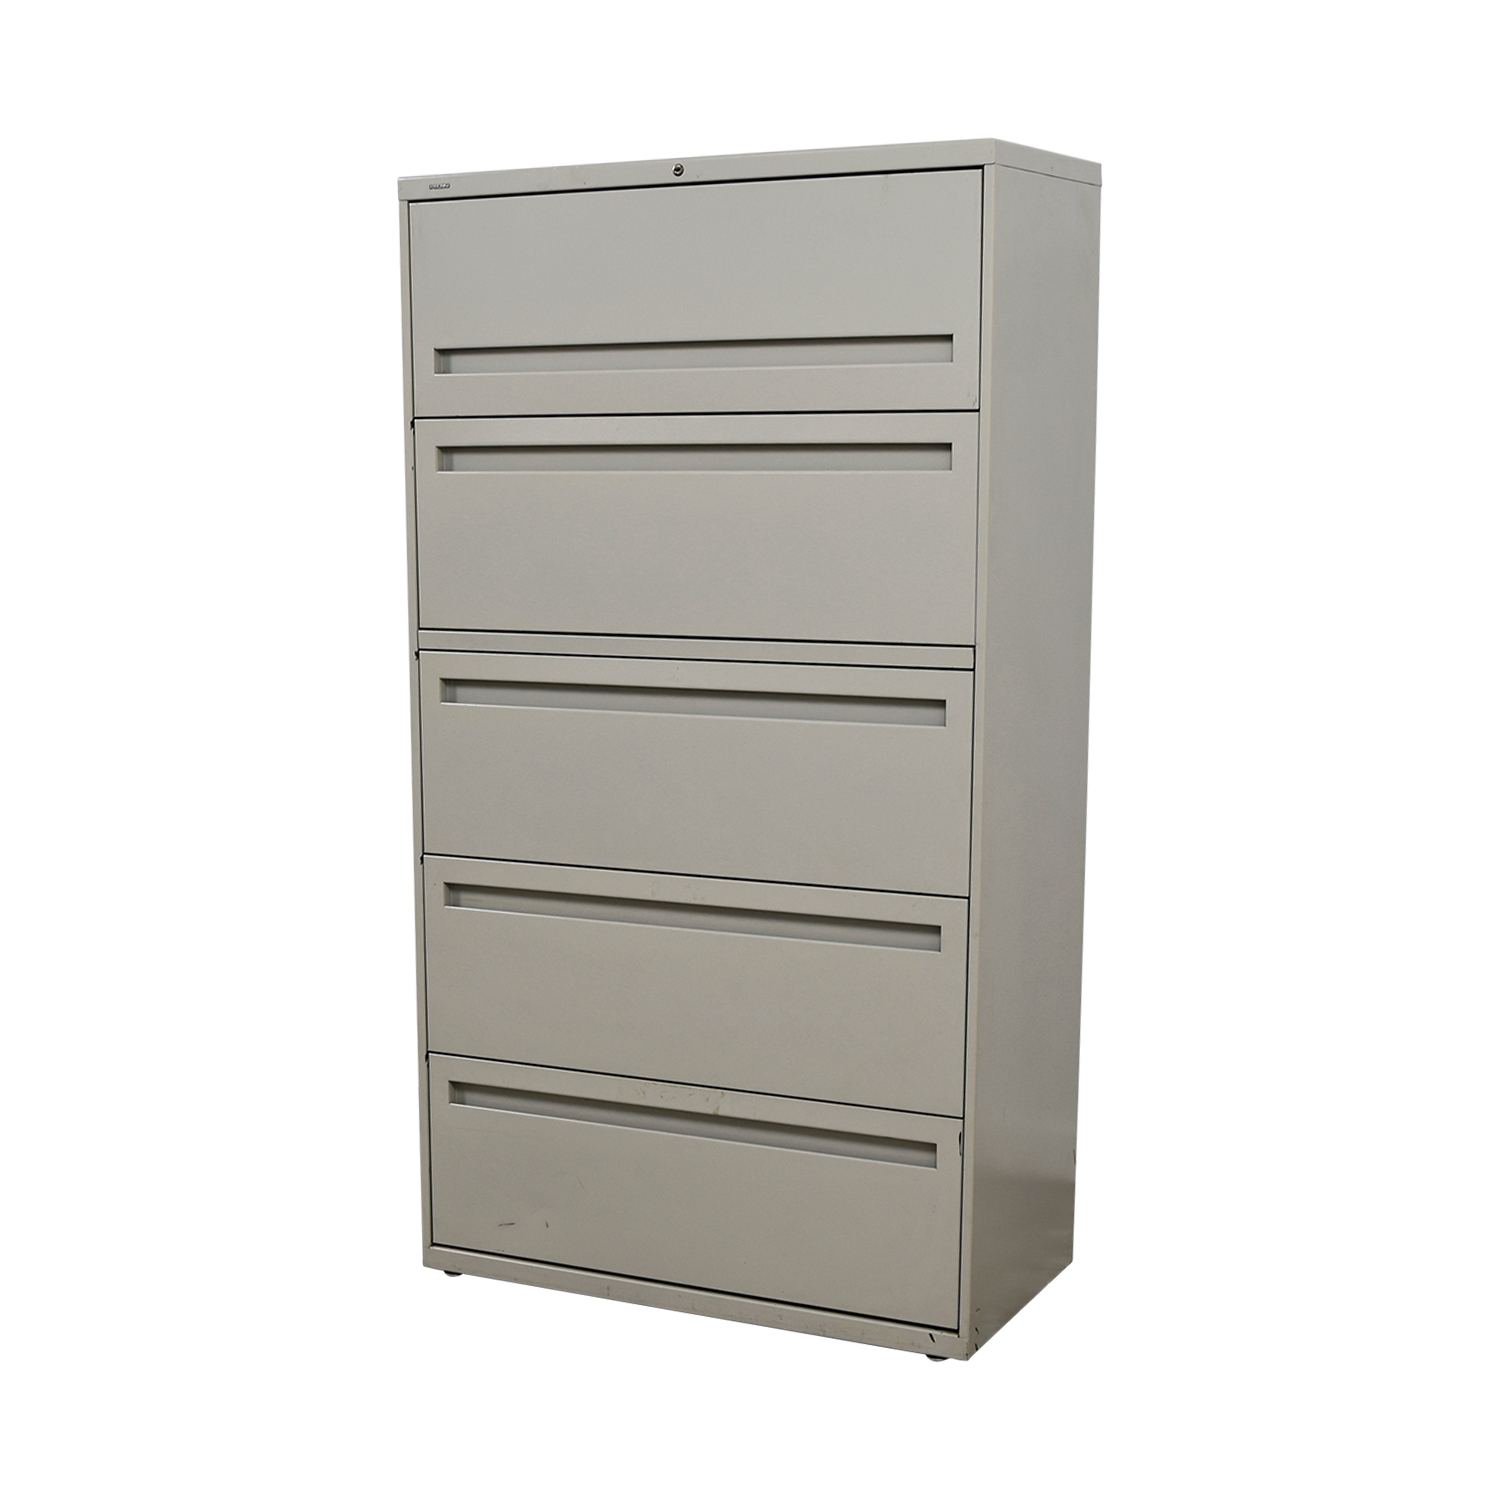 ... Hon White Five Drawer Lateral File Cabinet / Storage ...  sc 1 st  Furnishare & 80% OFF - Hon Hon White Five Drawer Lateral File Cabinet / Storage